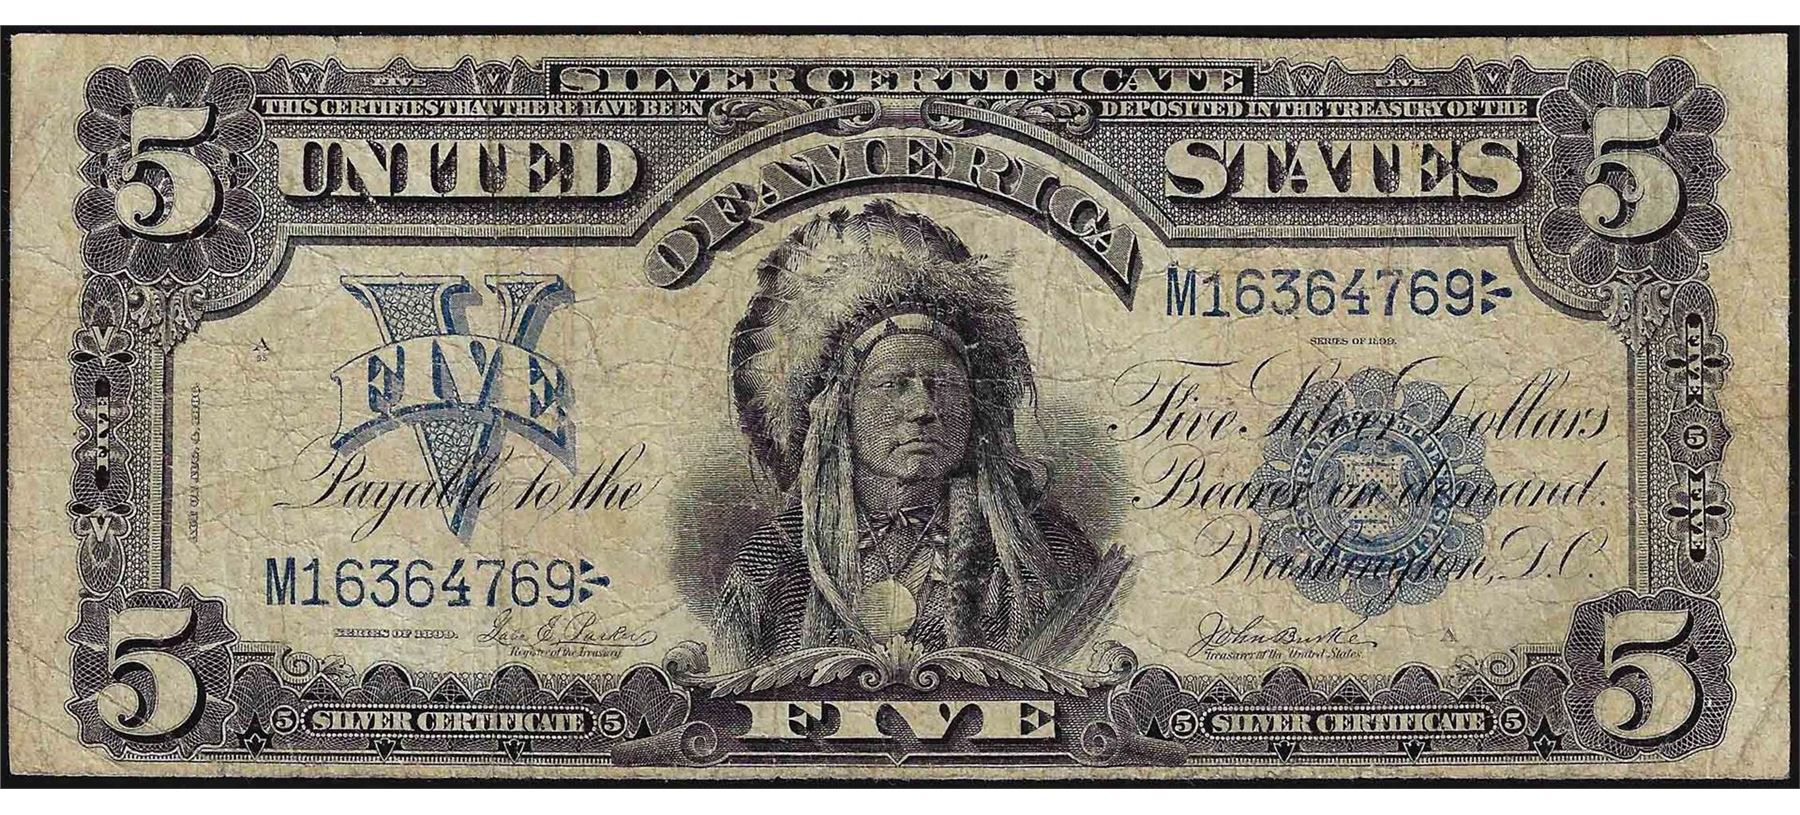 1899 5 Indian Chief Silver Certificate Bank Note